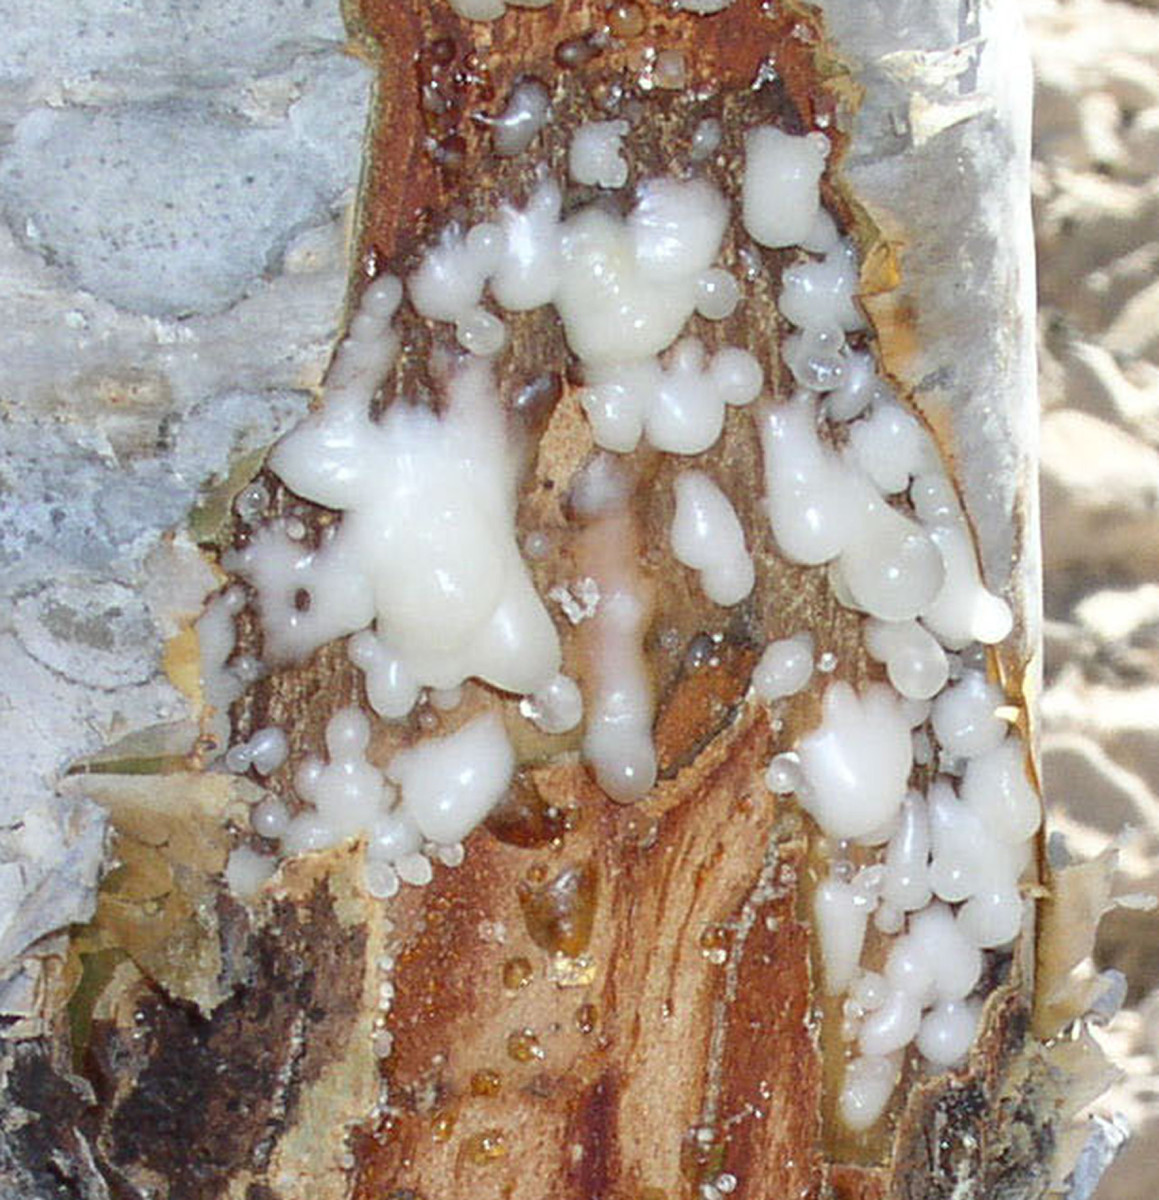 the sap from the Boswellia sacra tree is bled out to produce frankincense.